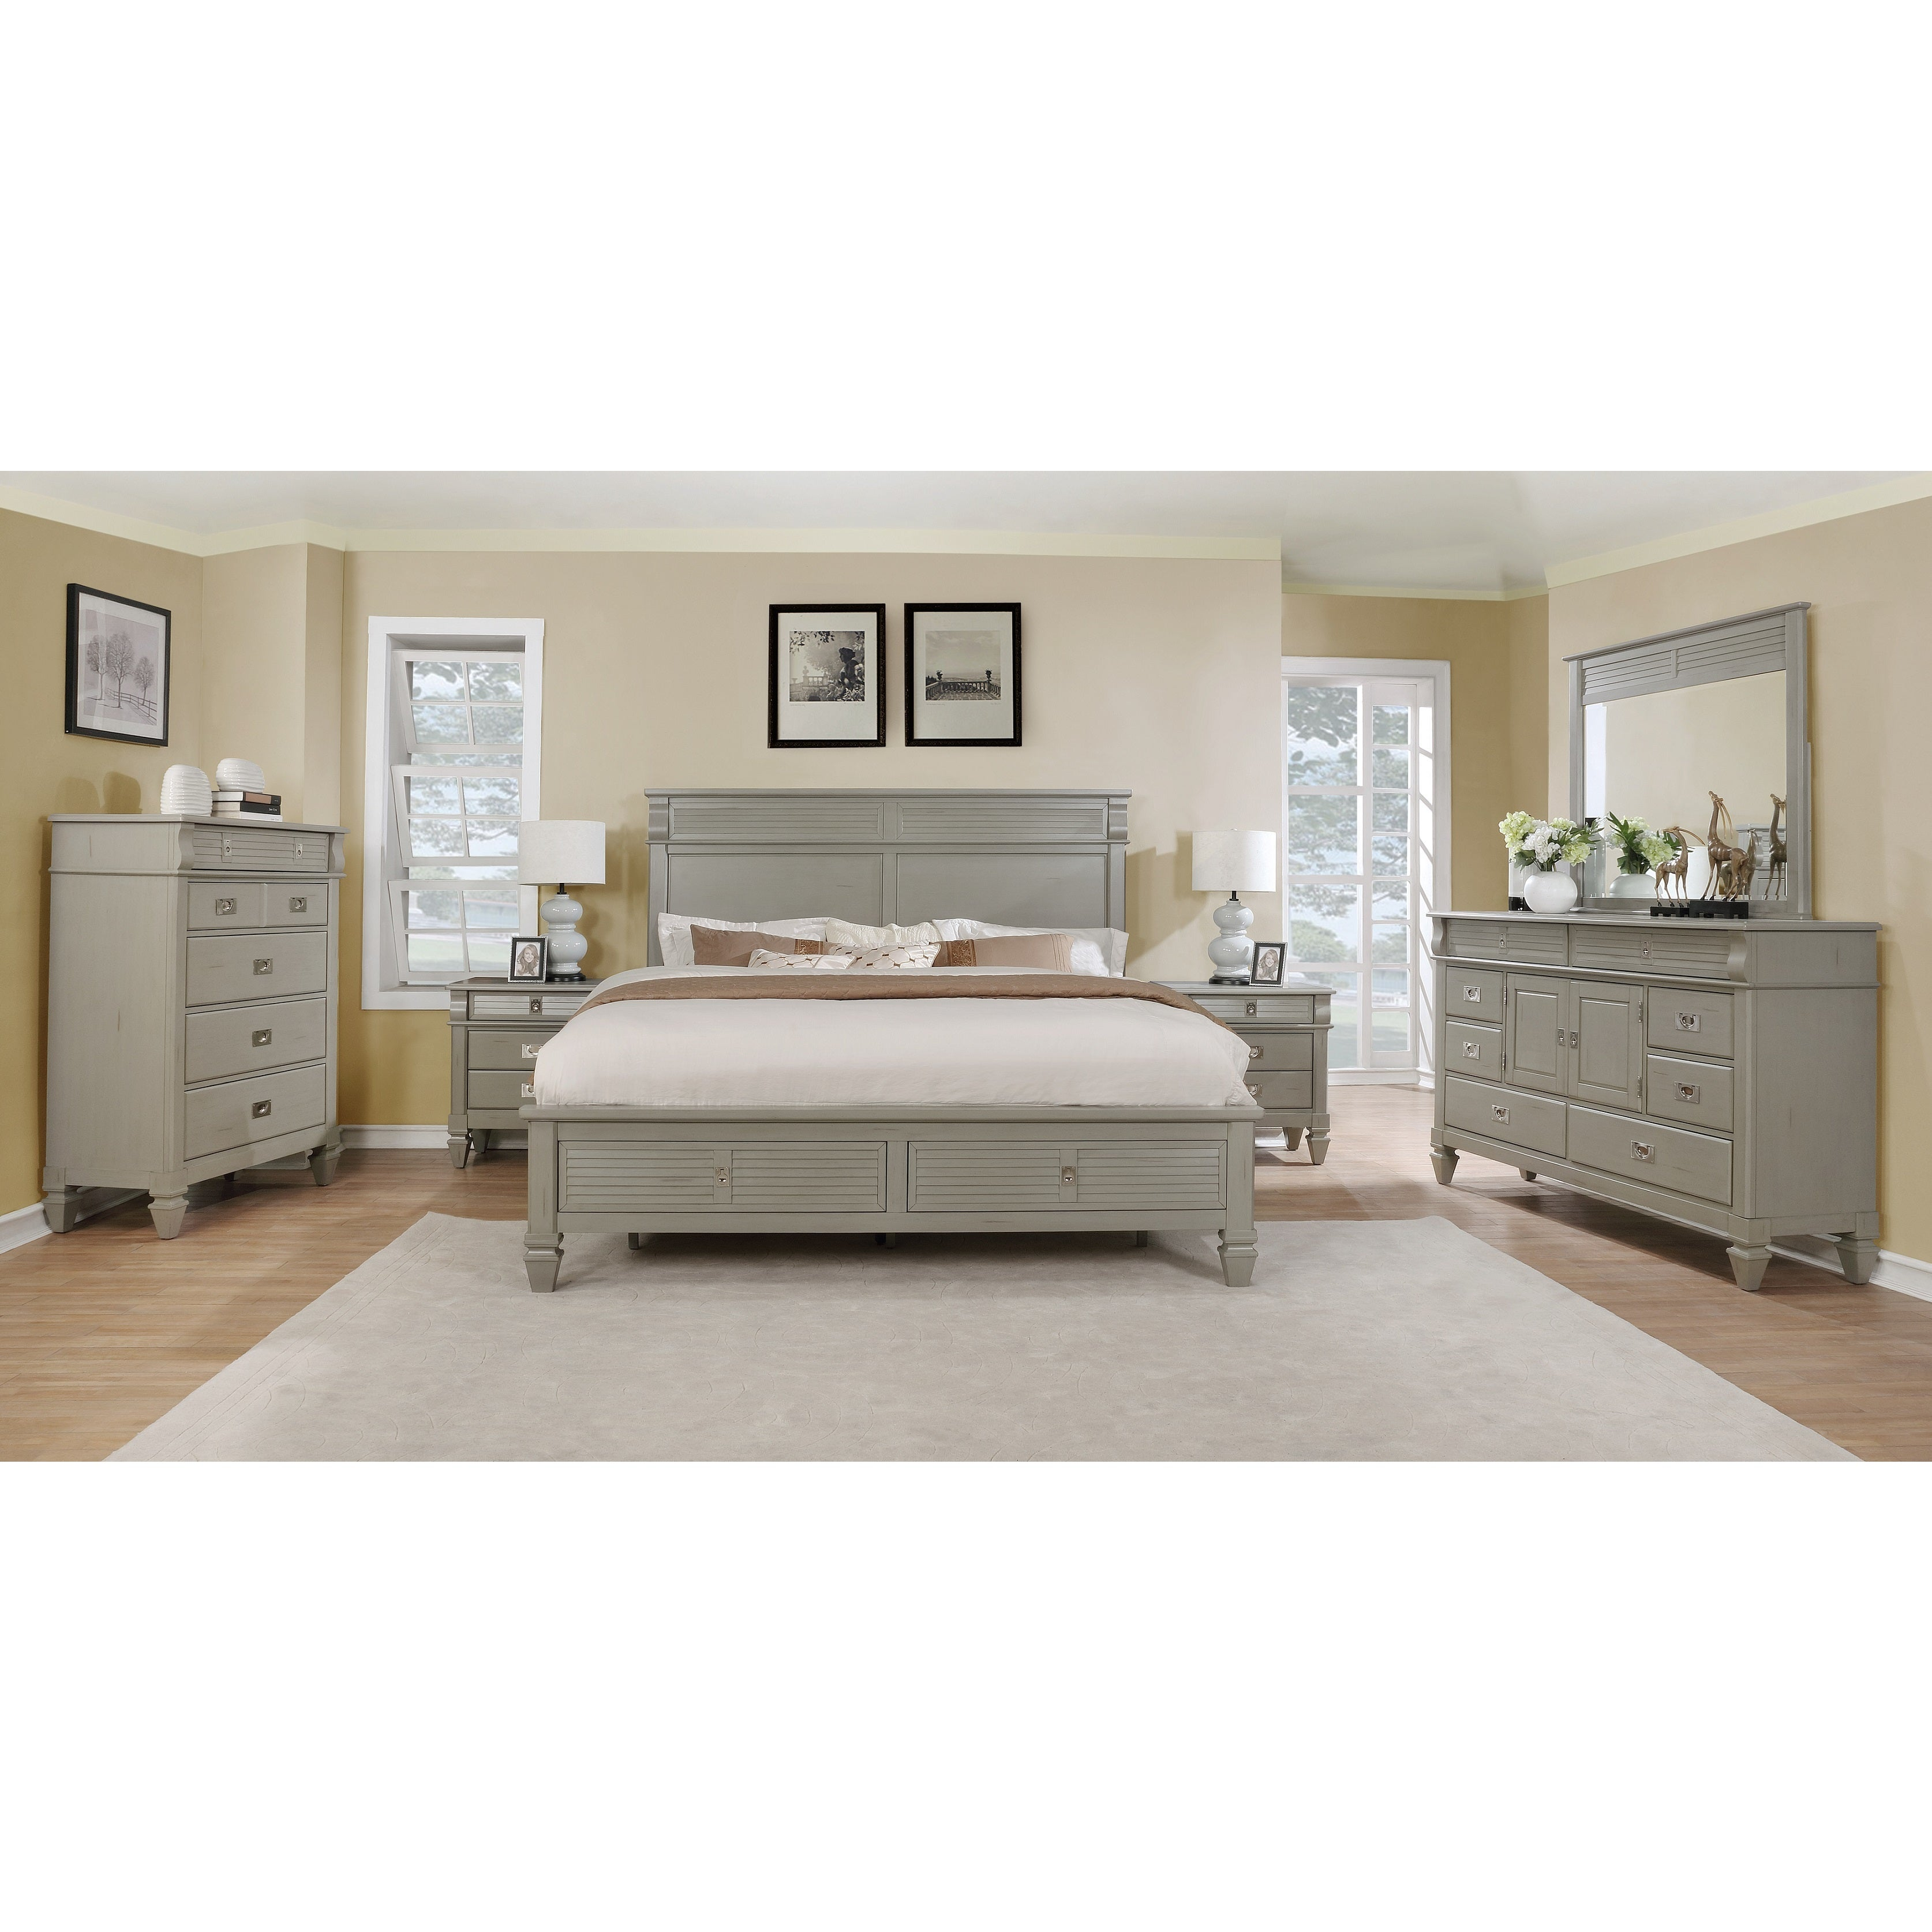 The gray barn barish solid wood construction bedroom set with king size bed dresser mirror chest and 2 nightstands